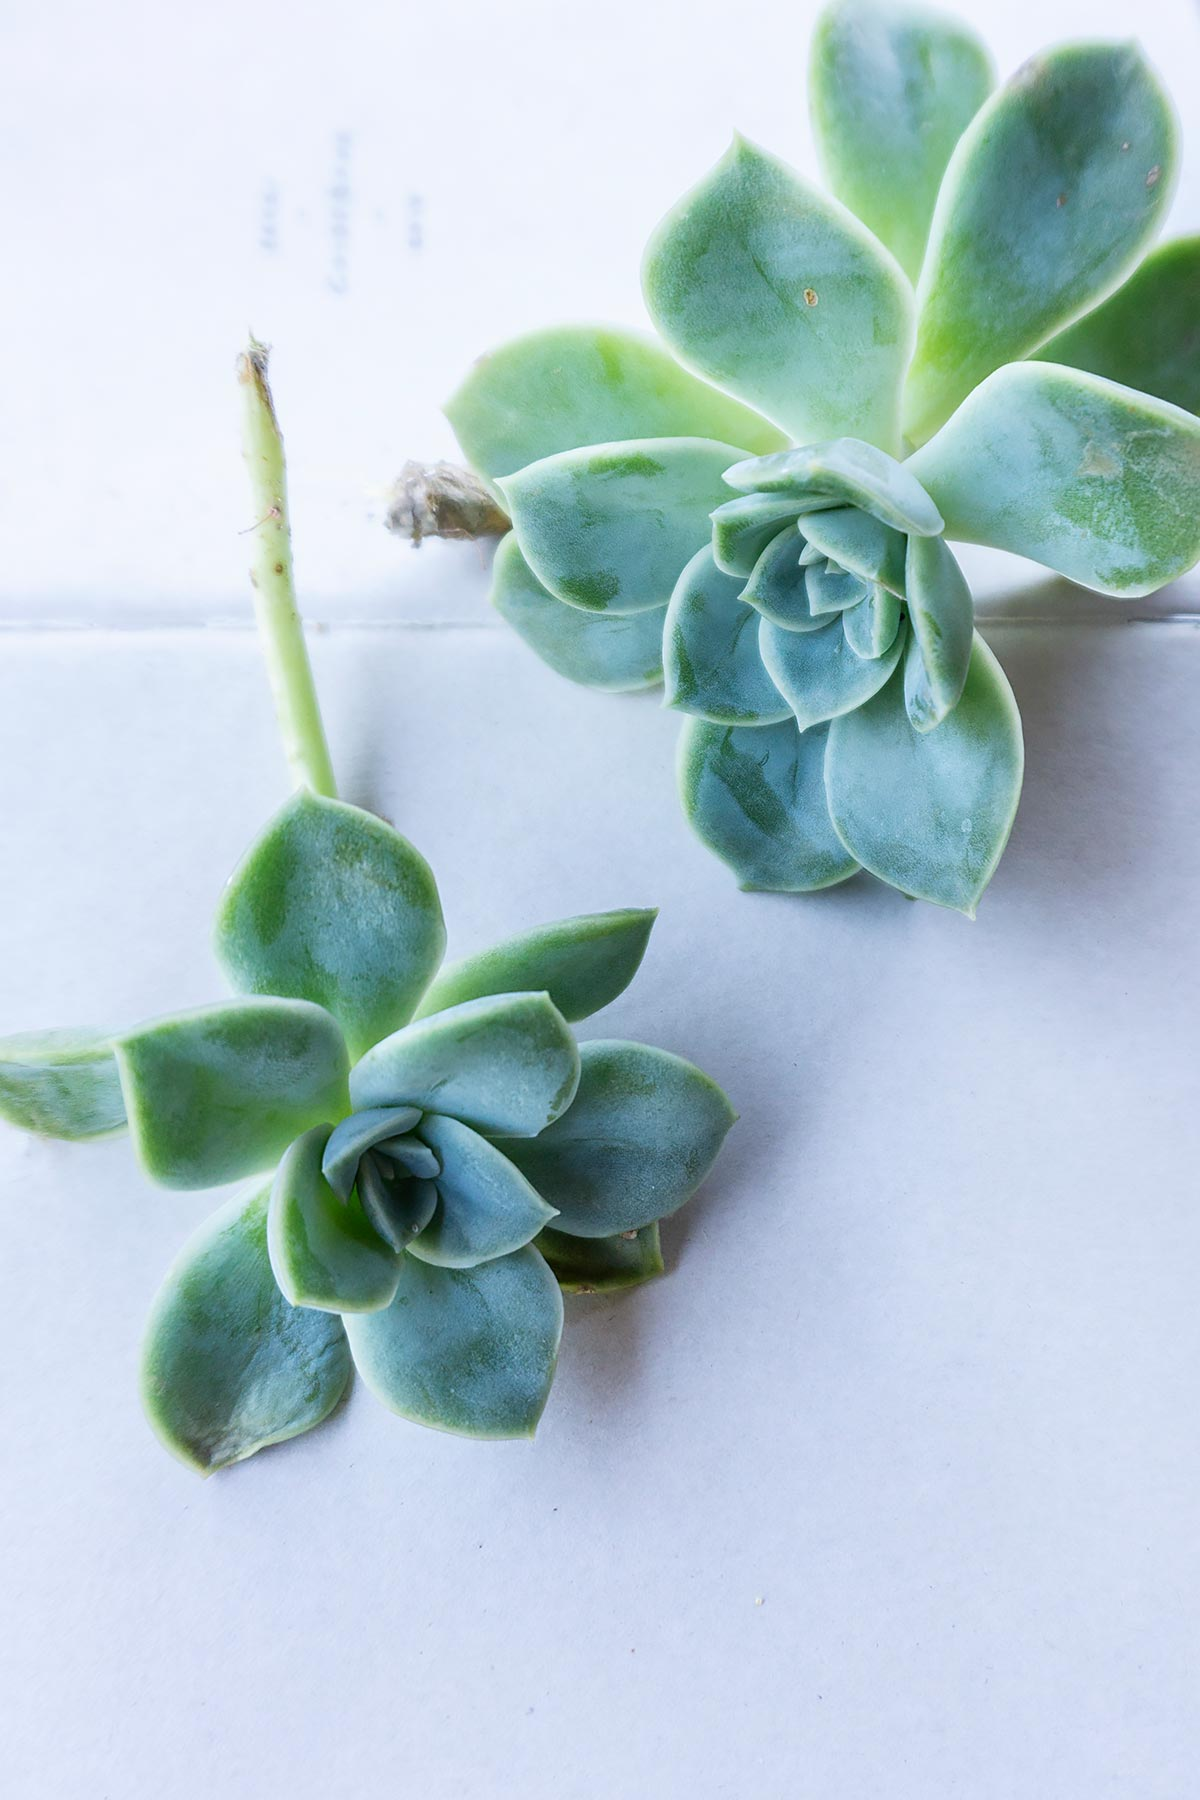 Echeveria succulent_Plant Photography by Soonafternoon Copyright